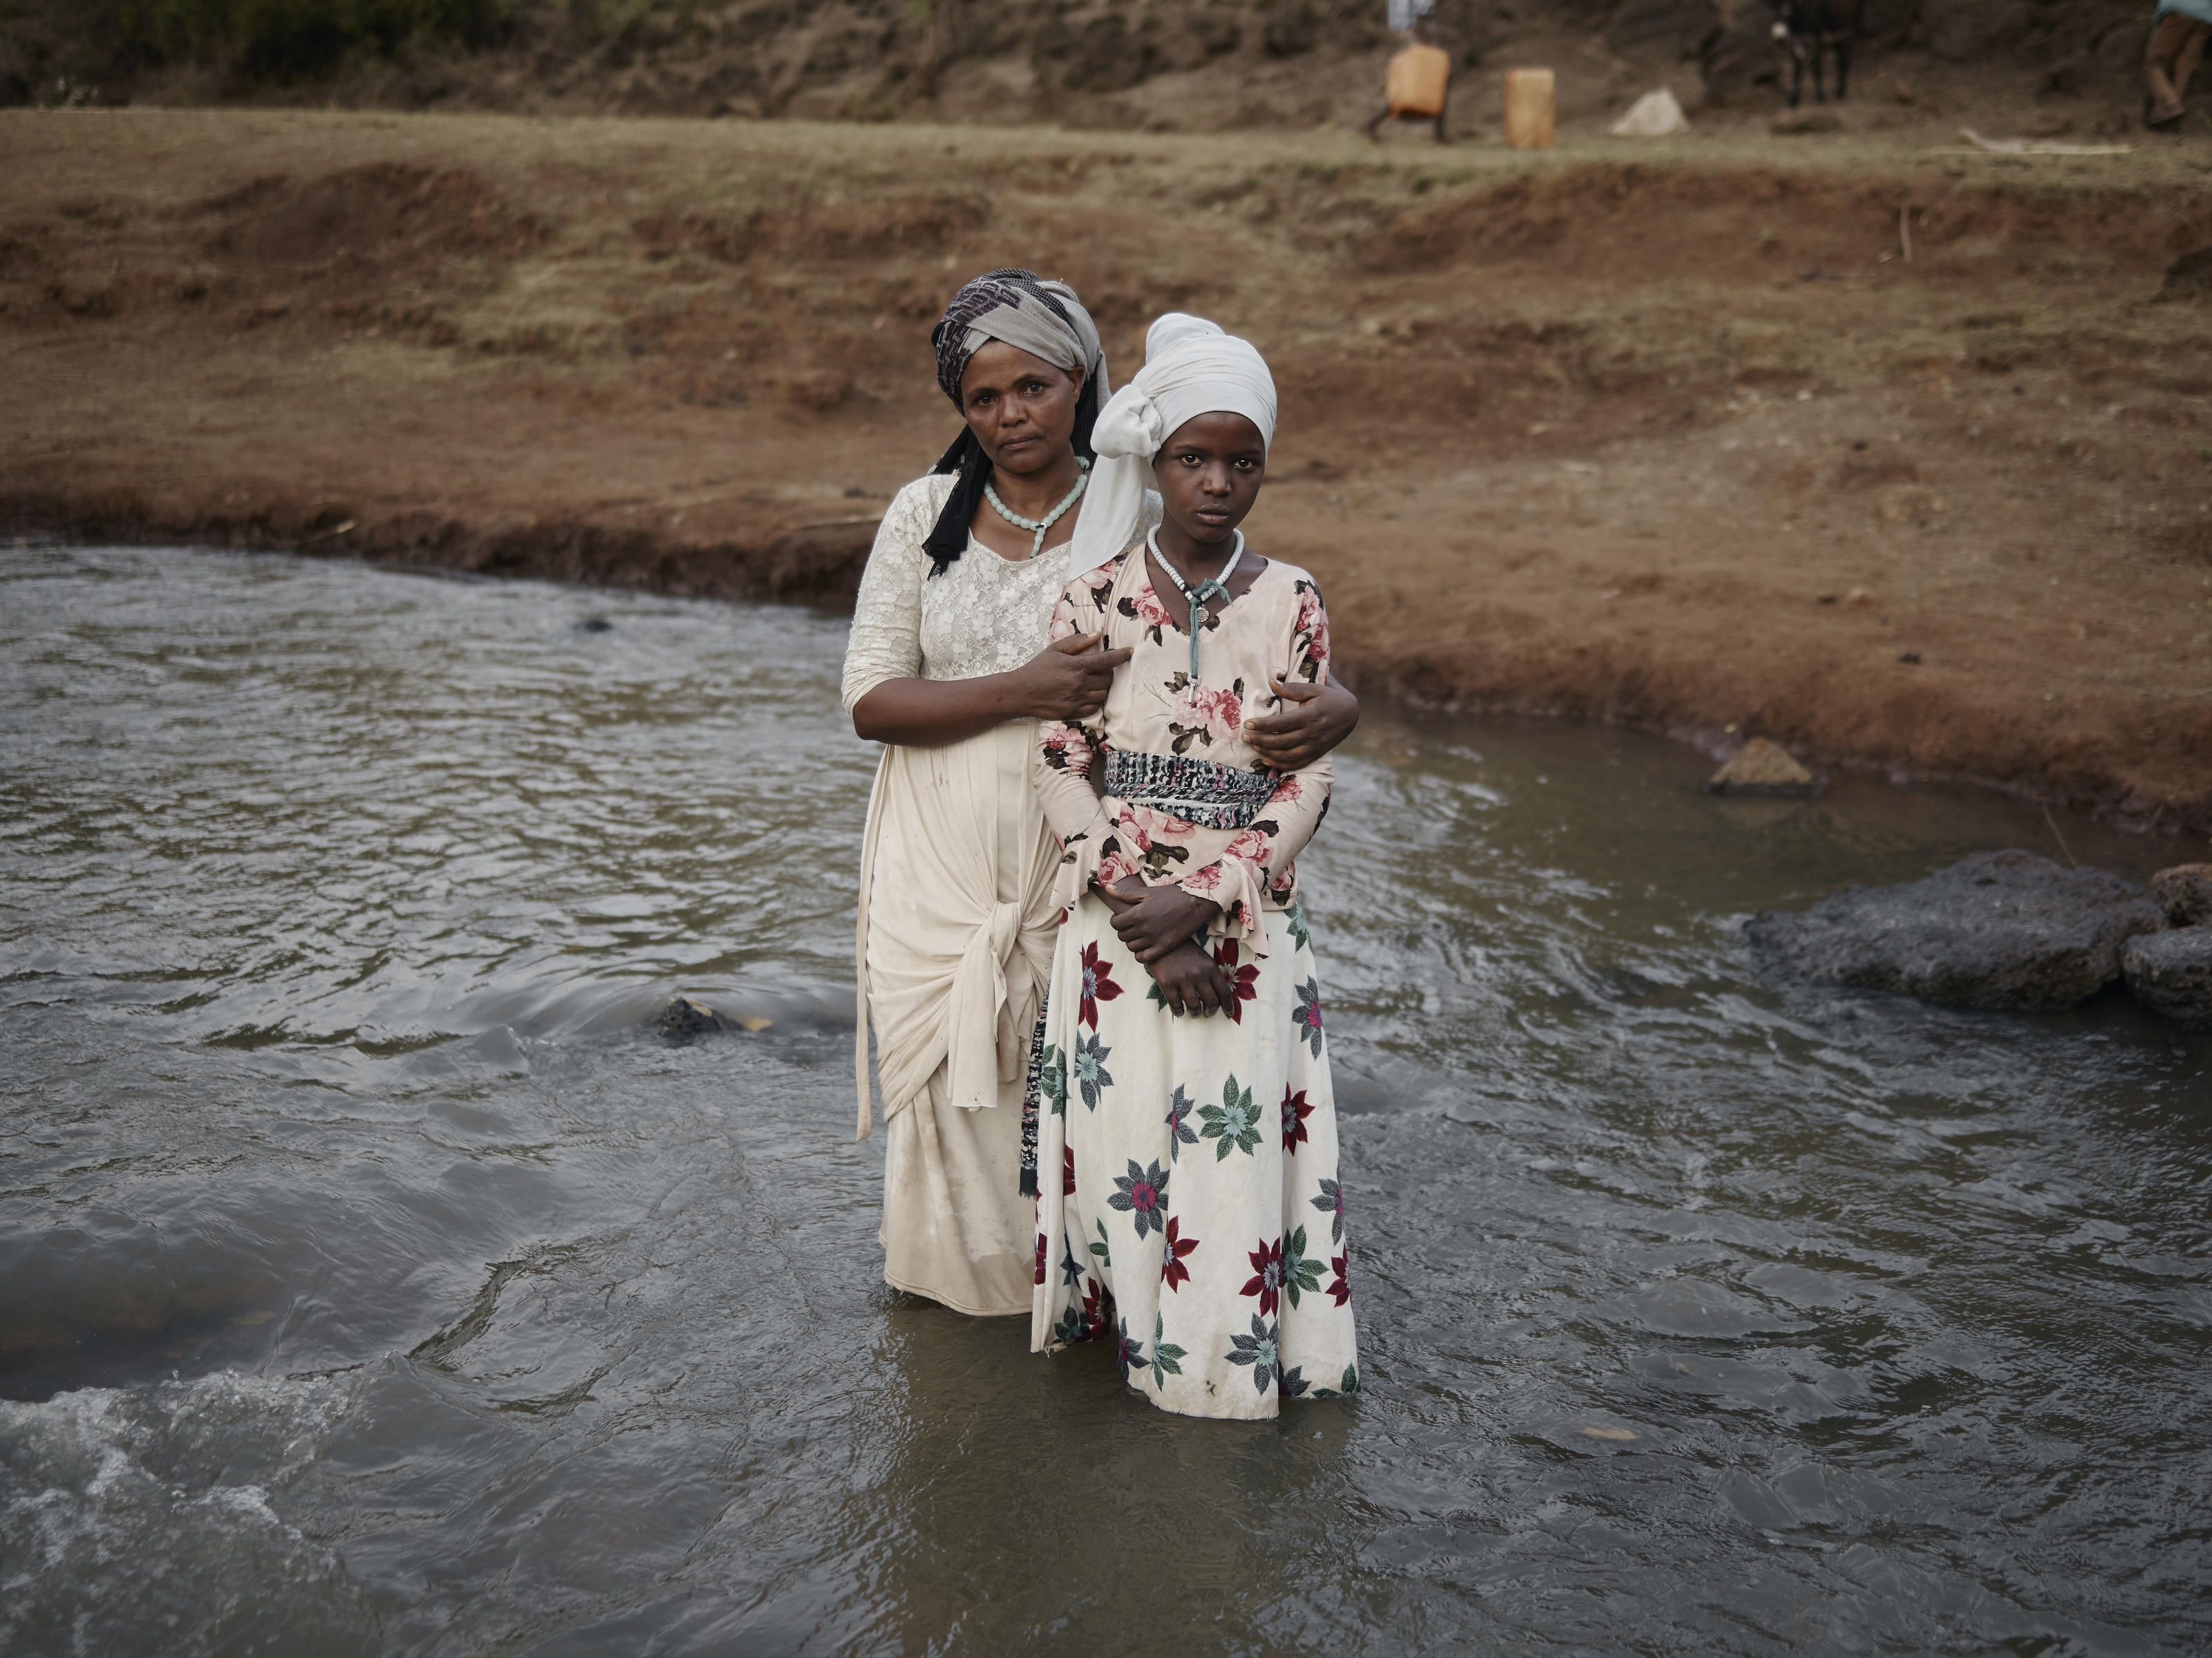 Hawa (44) with her daughter Ansha (12) standing in the River Lah in Frat, Ethiopia. February 2020. Ansha inspired the sand portrait on Whitby beach created by WaterAid in March 2020.